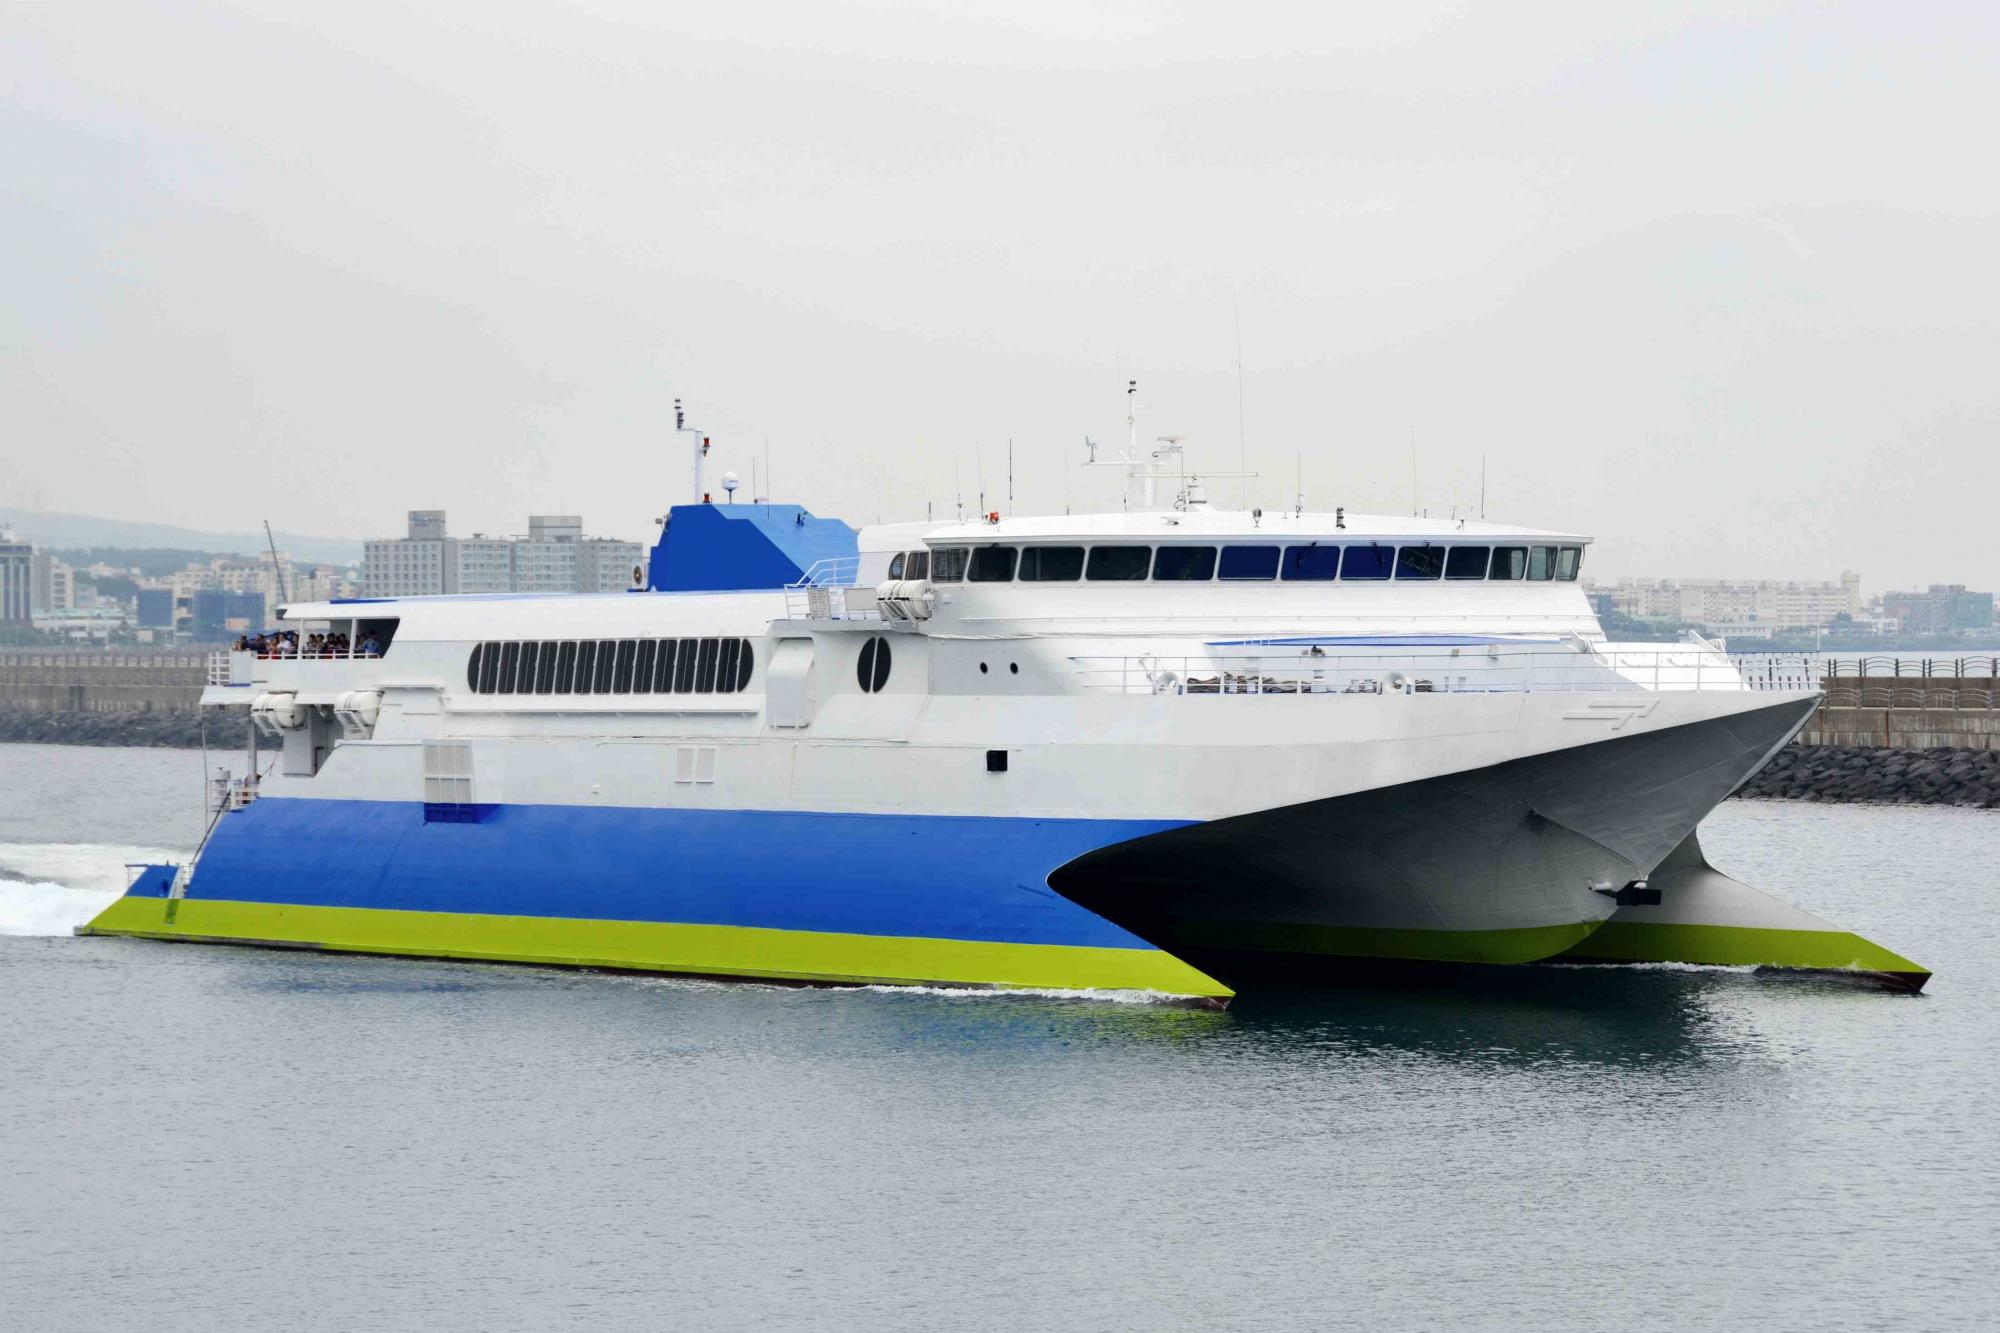 Go 1014 - Catamaran RoPax Ferry - 74m